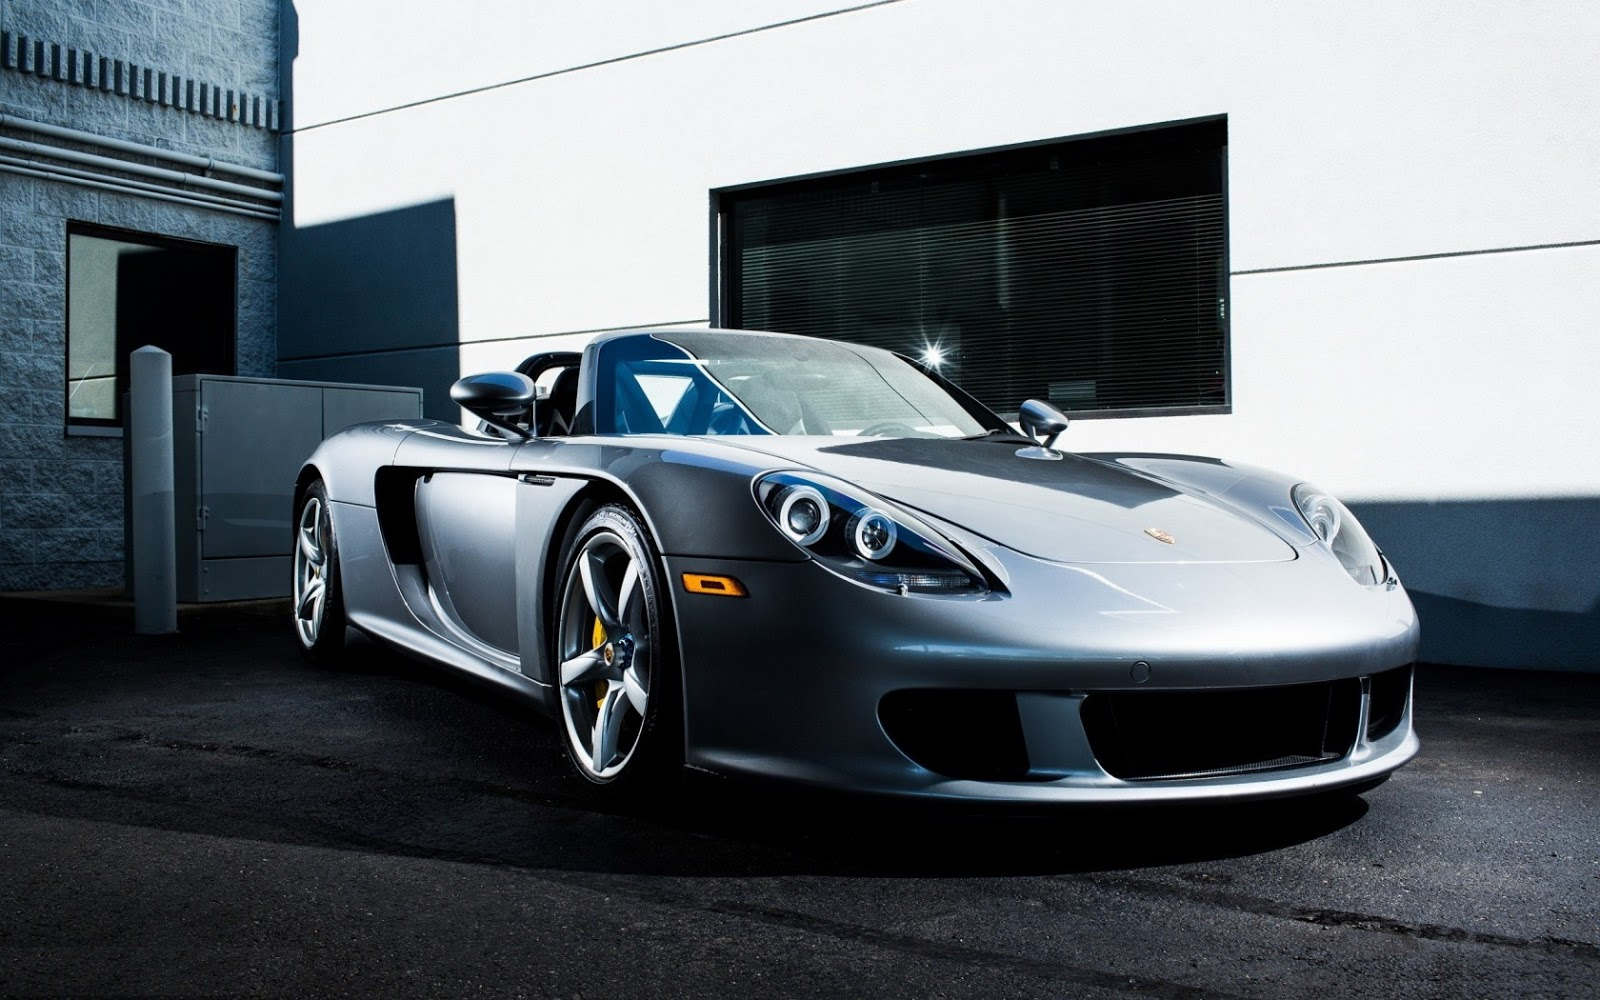 porsche carrera gt imagen de un carro deportivo fotos e im genes en fotoblog x. Black Bedroom Furniture Sets. Home Design Ideas